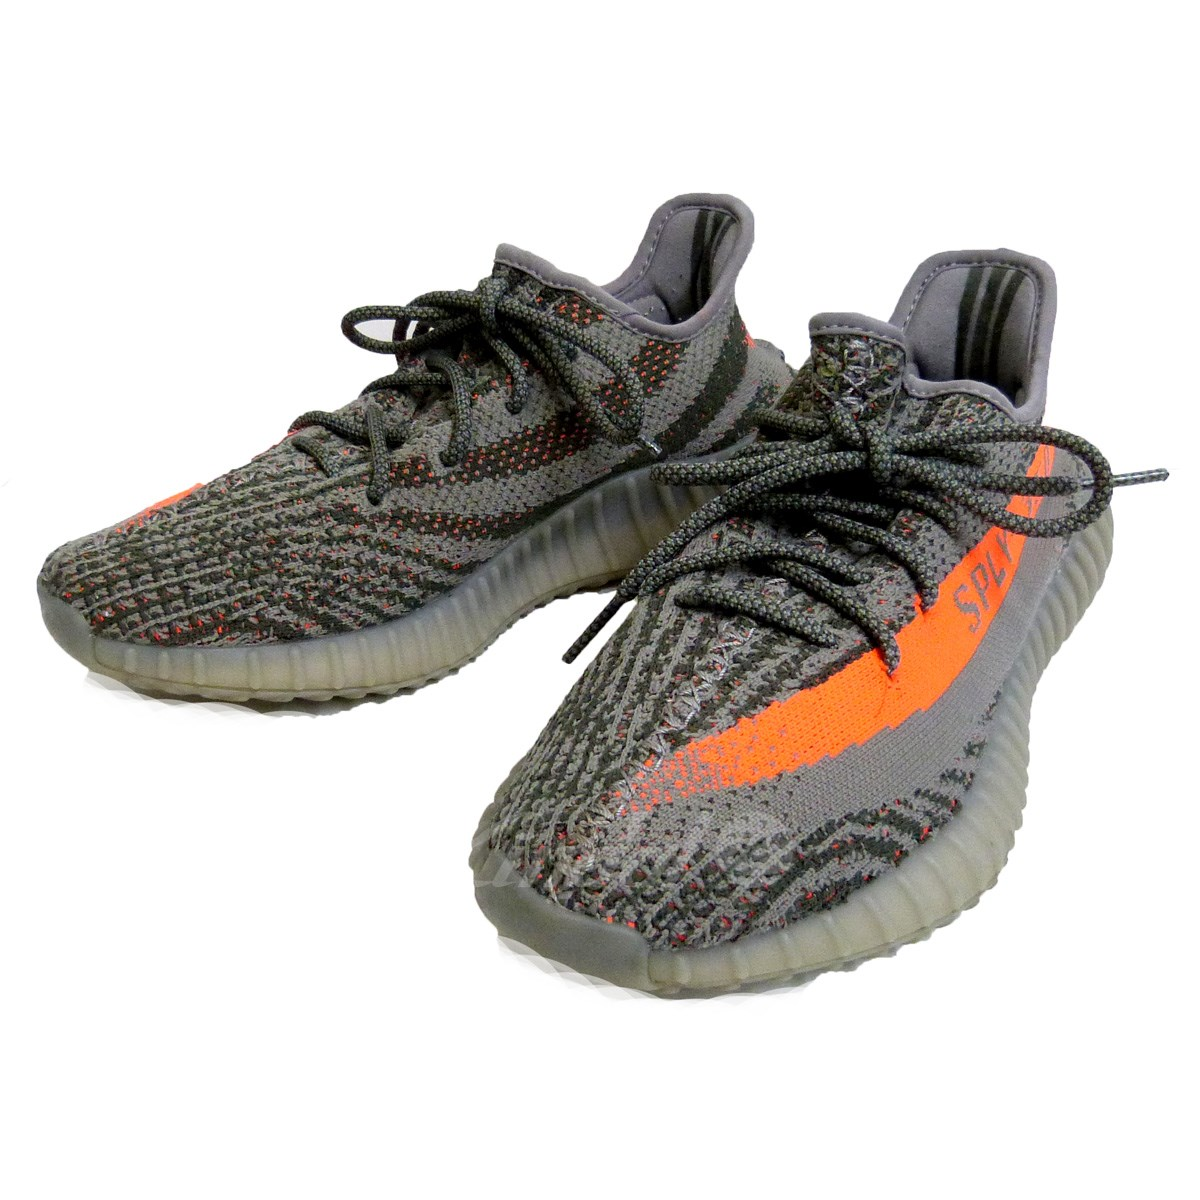 【中古】adidas Originals by KANYE WEST 「YEEZY BOOST 350 V2 BELUGA」ローカットスニーカー BB1826 【送料無料】 【009456】 【KIND1327】